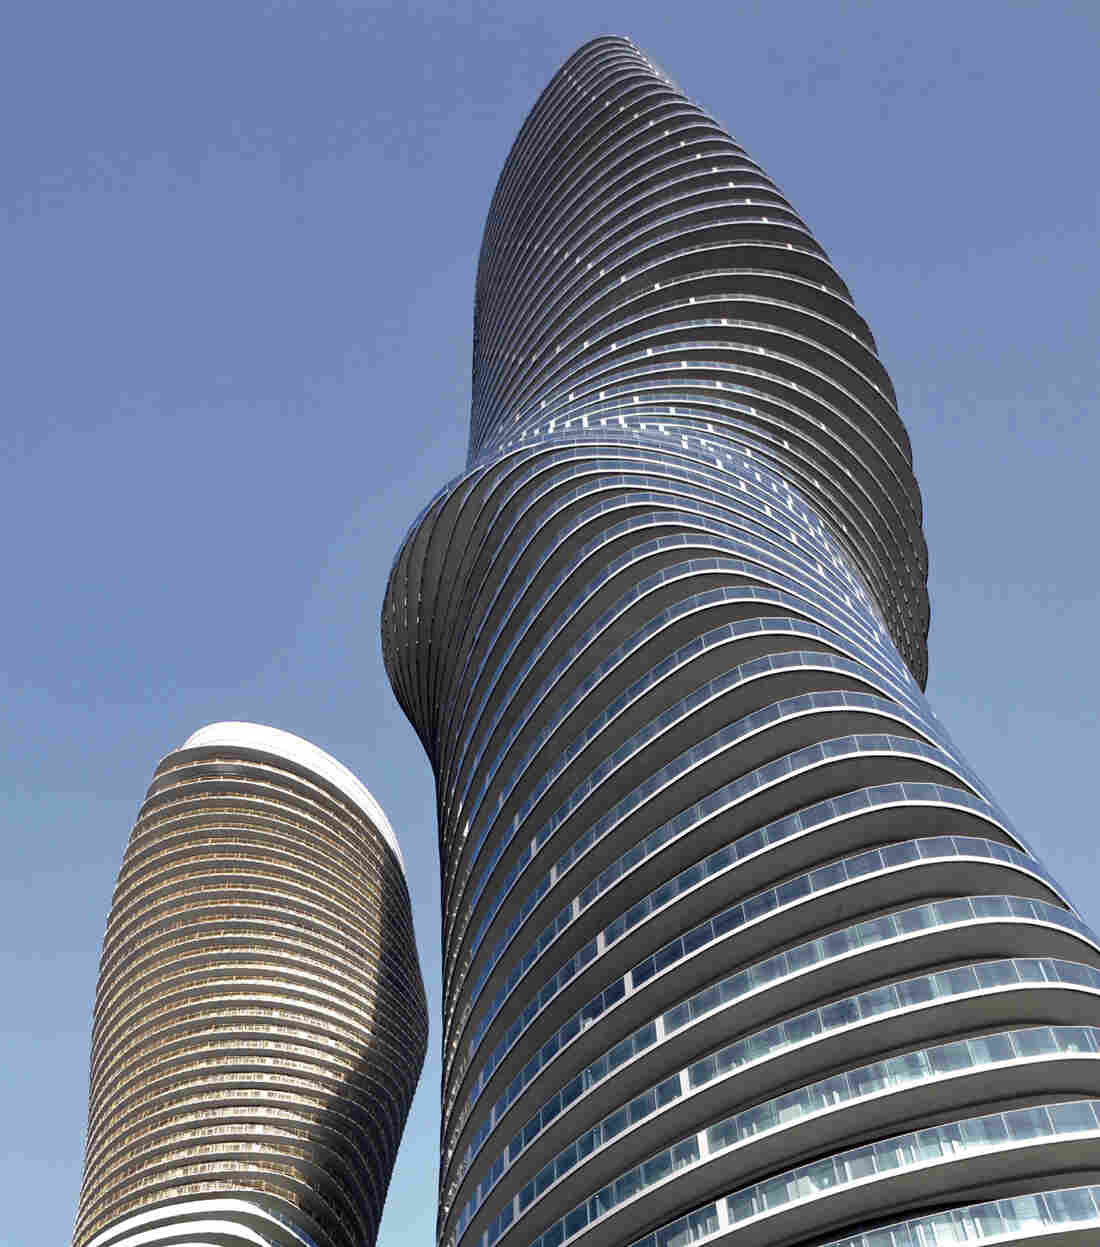 Buildings that wheeze squeeze and dance krulwich for Absolute towers